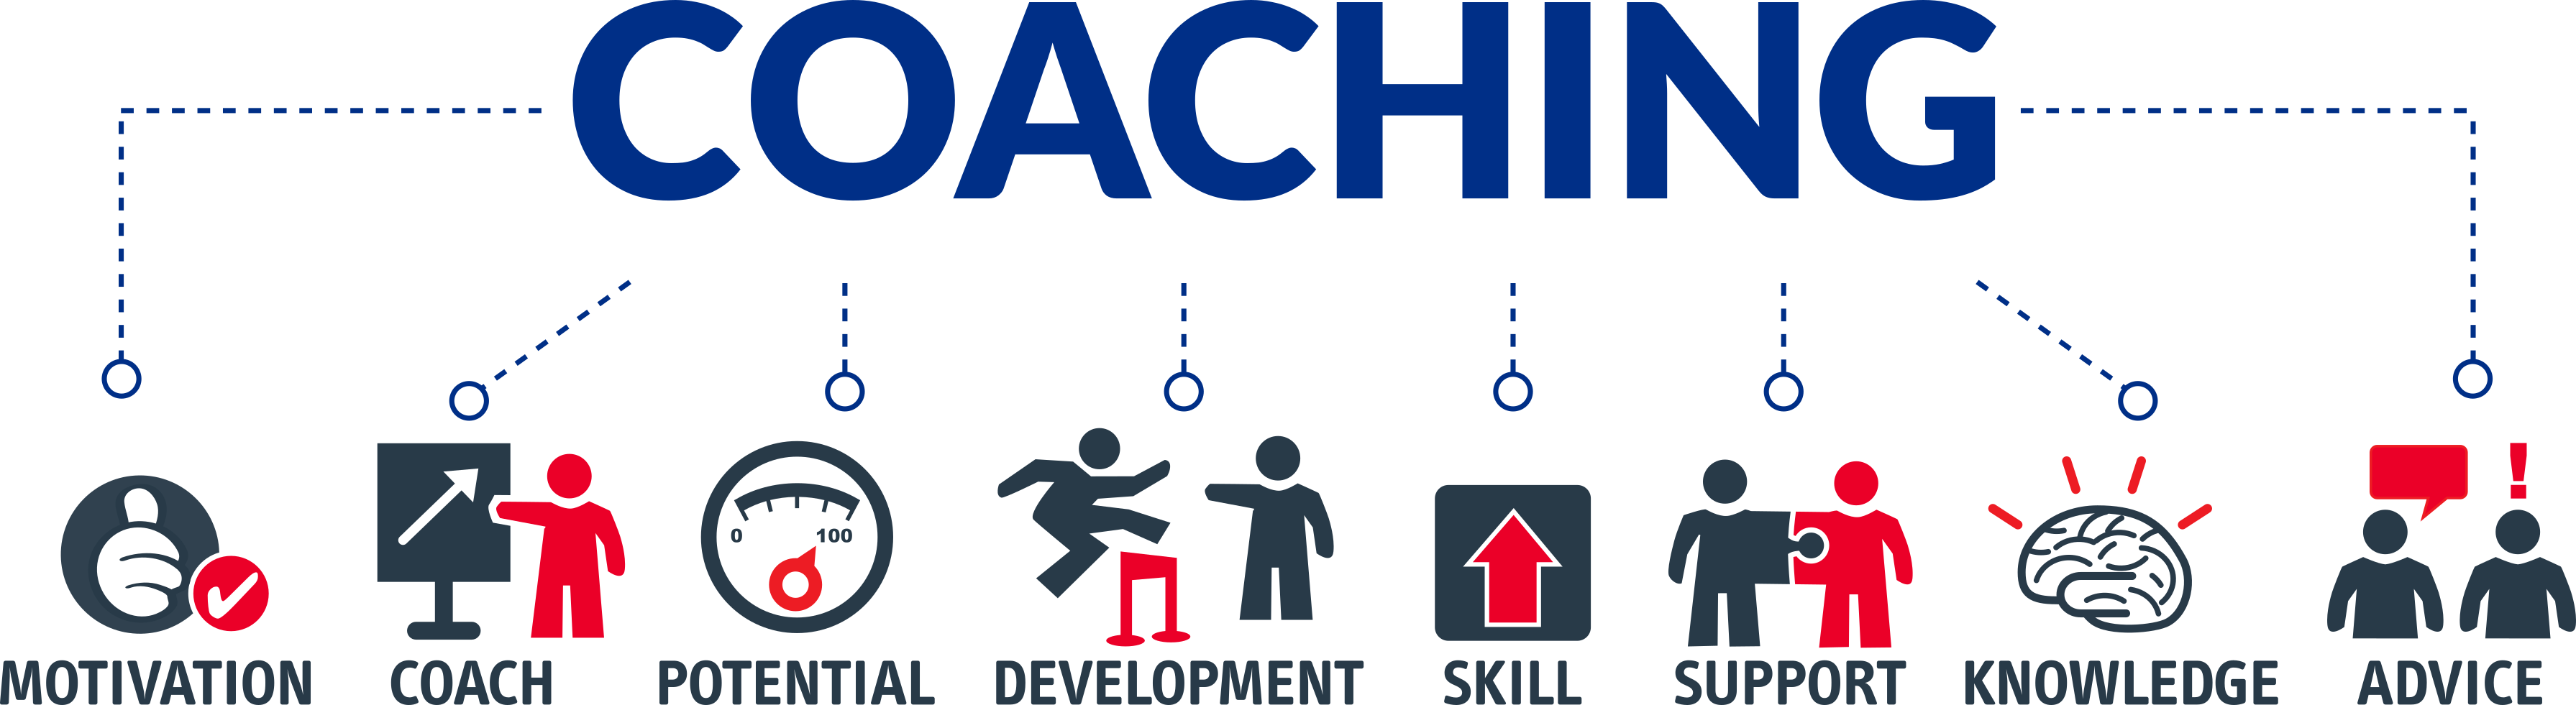 Effective Leadership Coaching Is Crucial